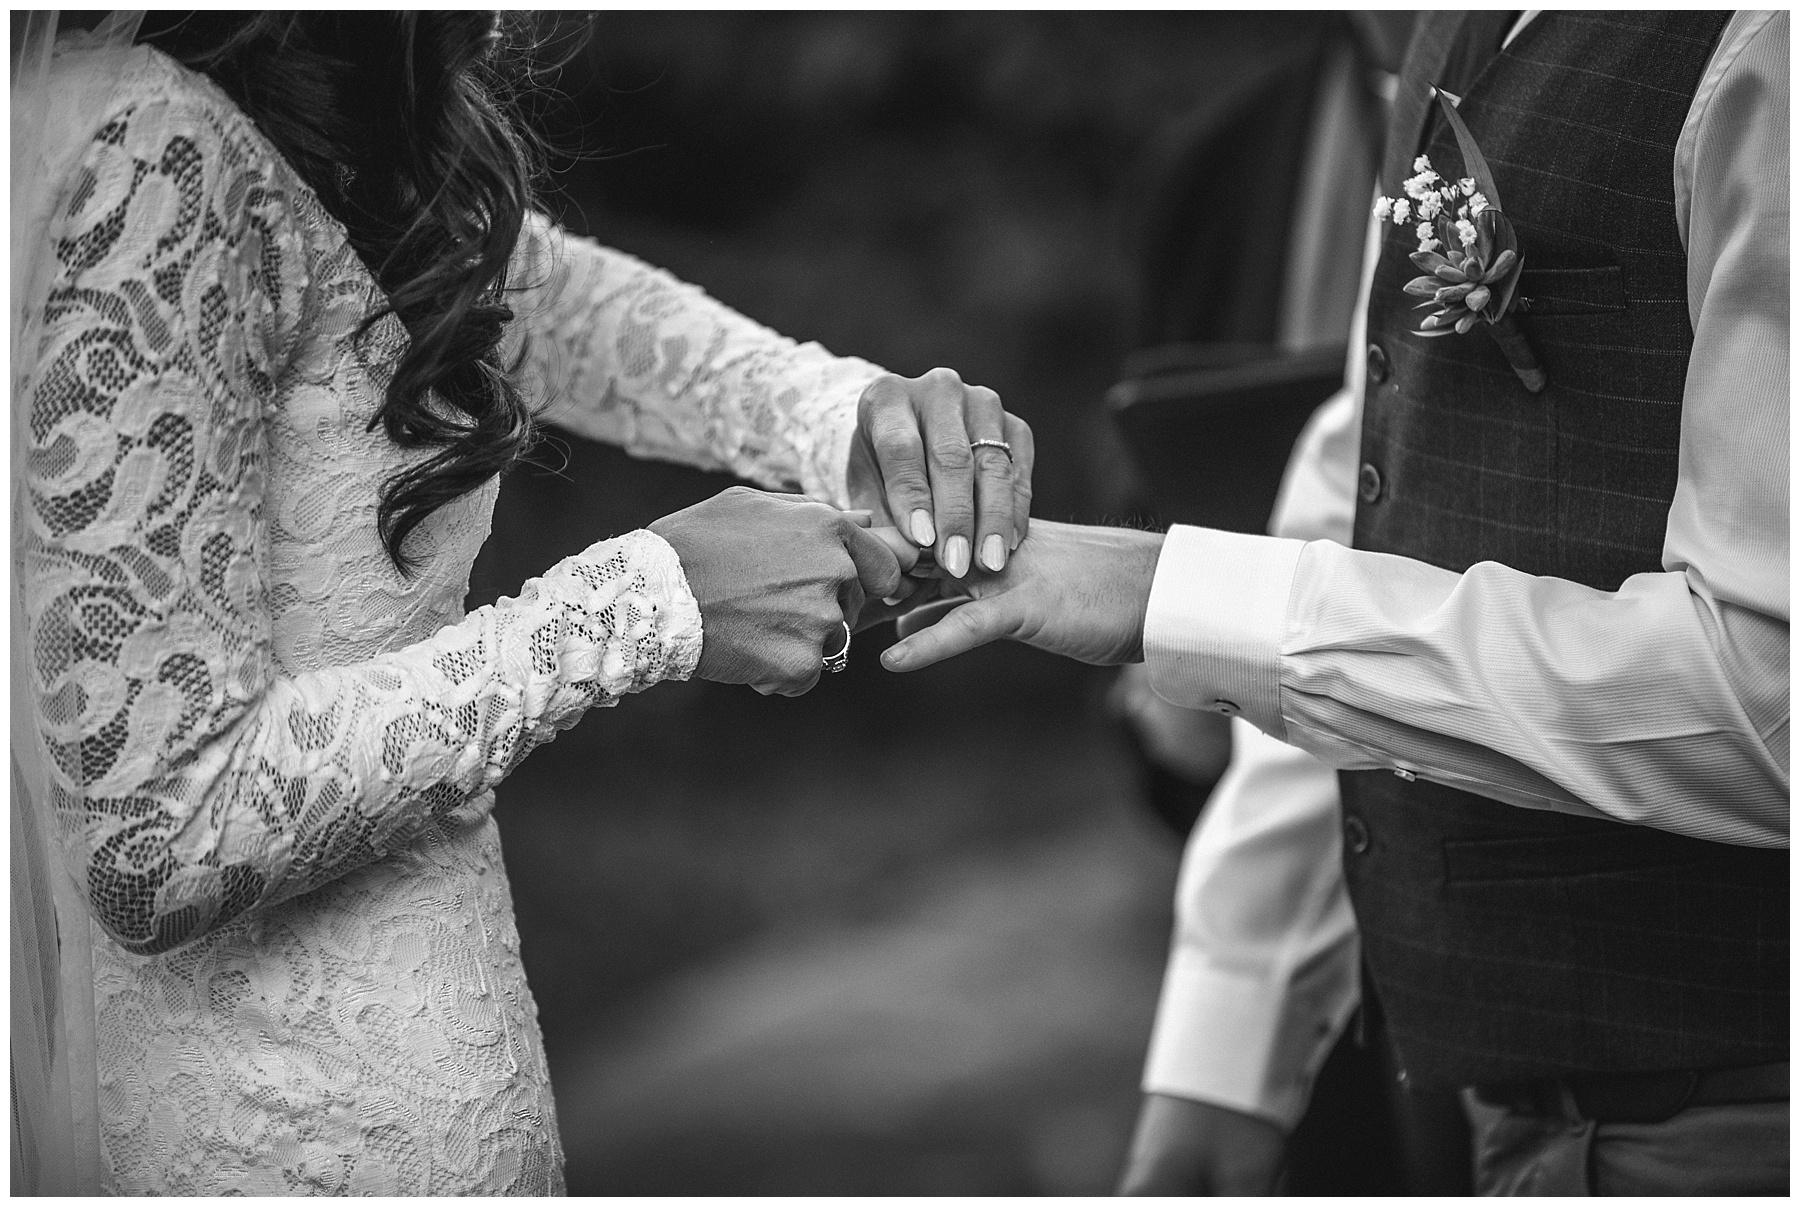 The bride struggling to put the grooms ring on his finger - de lumière photography